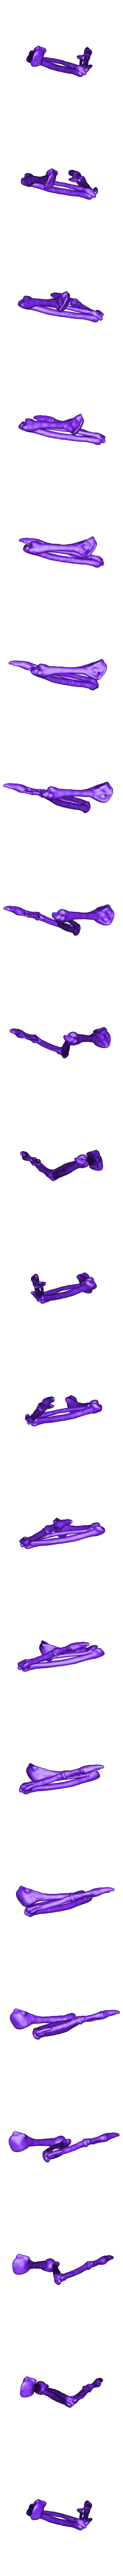 NEW-Left-Wing-repaired-repaired-repaired.stl Download STL file Macow Skeleton • 3D printing template, LordLilapause